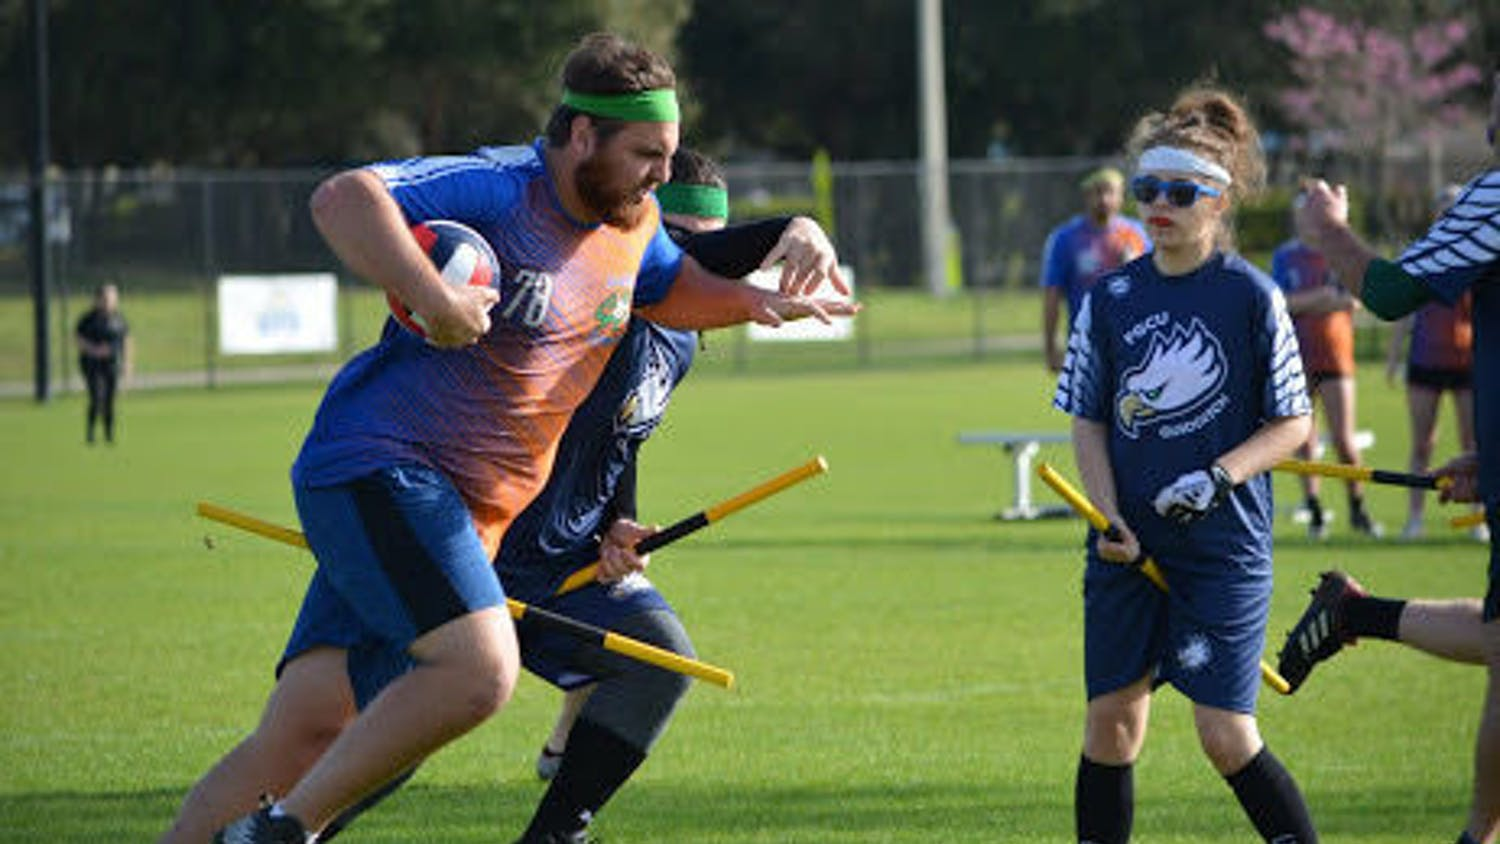 Team captain of the UF Quidditch team Jeremy Kowkabany, a 21-year-old UF astrophysics junior, runs across the field with the ball.